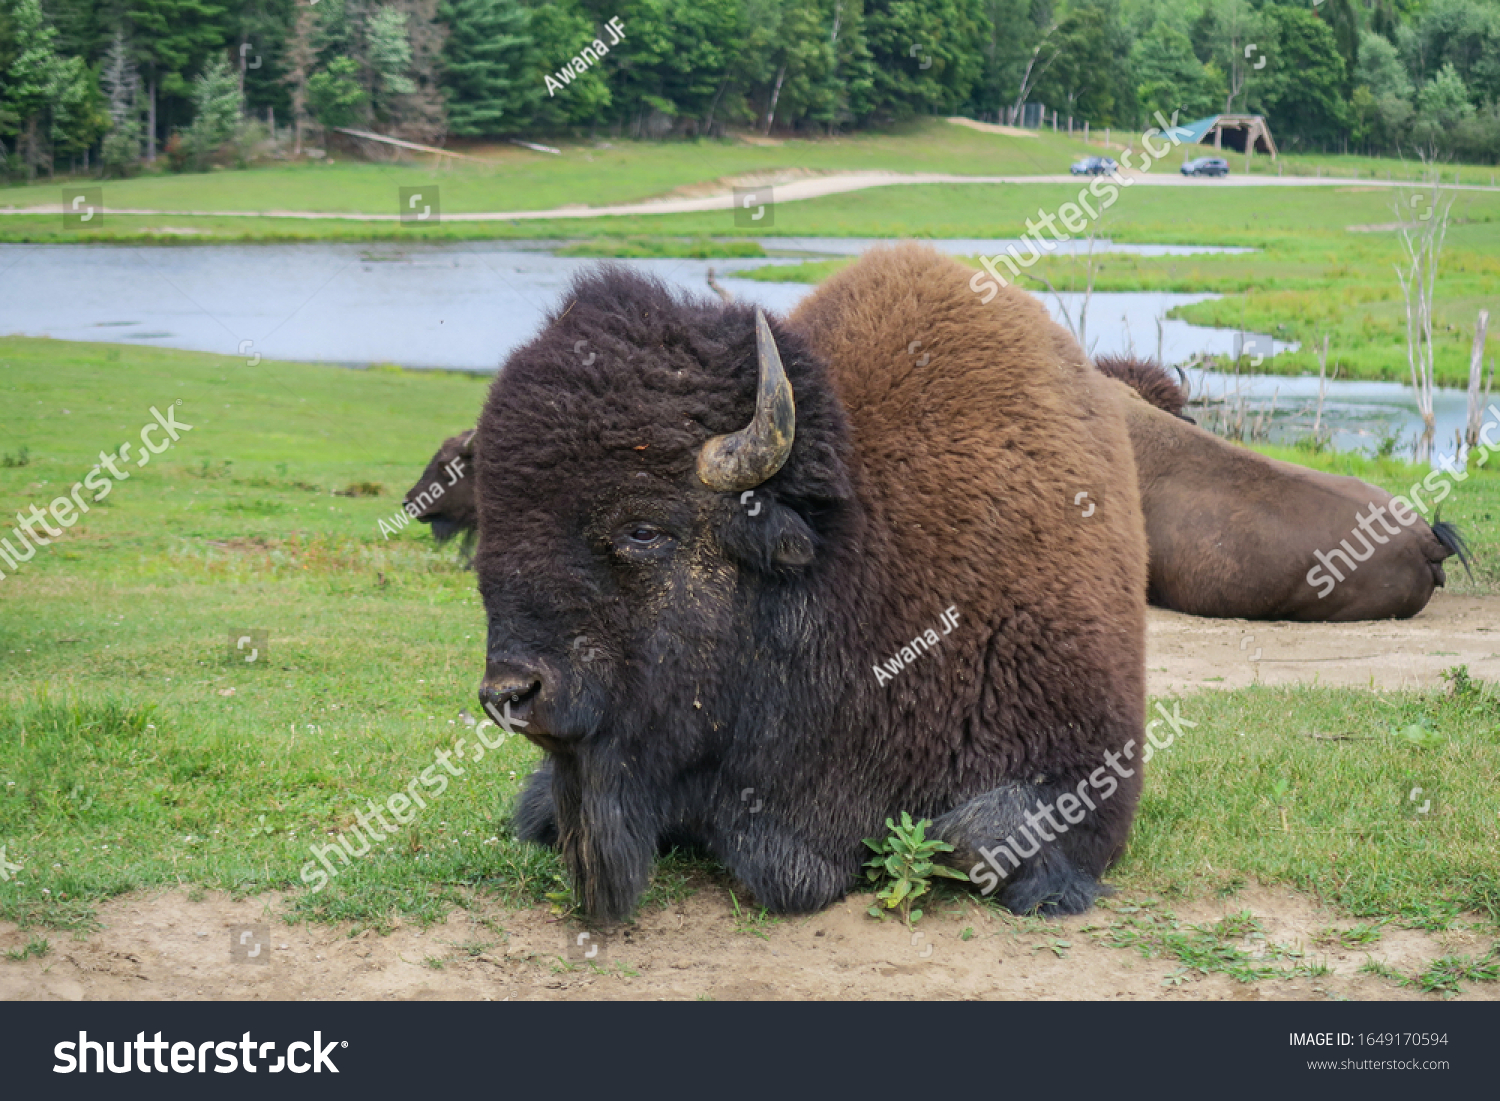 stock-photo-an-impressive-american-bison